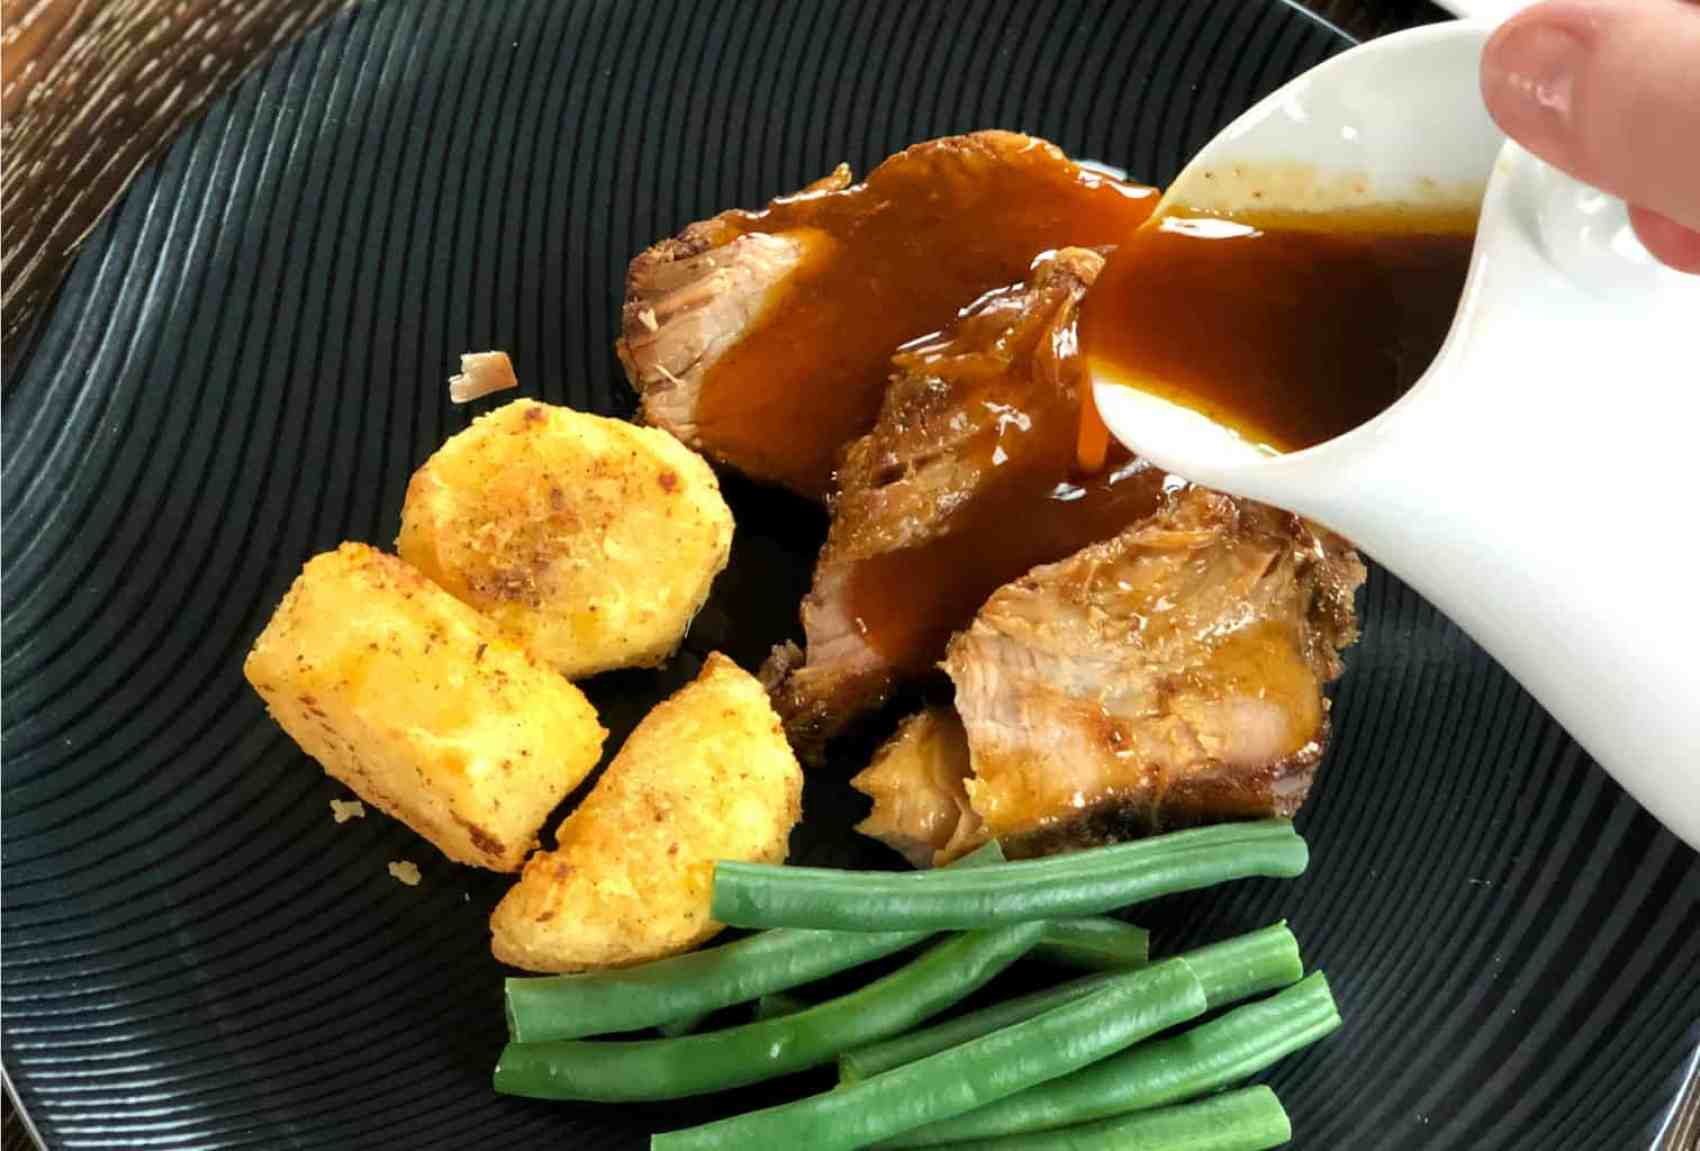 Pouring liberal amounts of gravy over pork